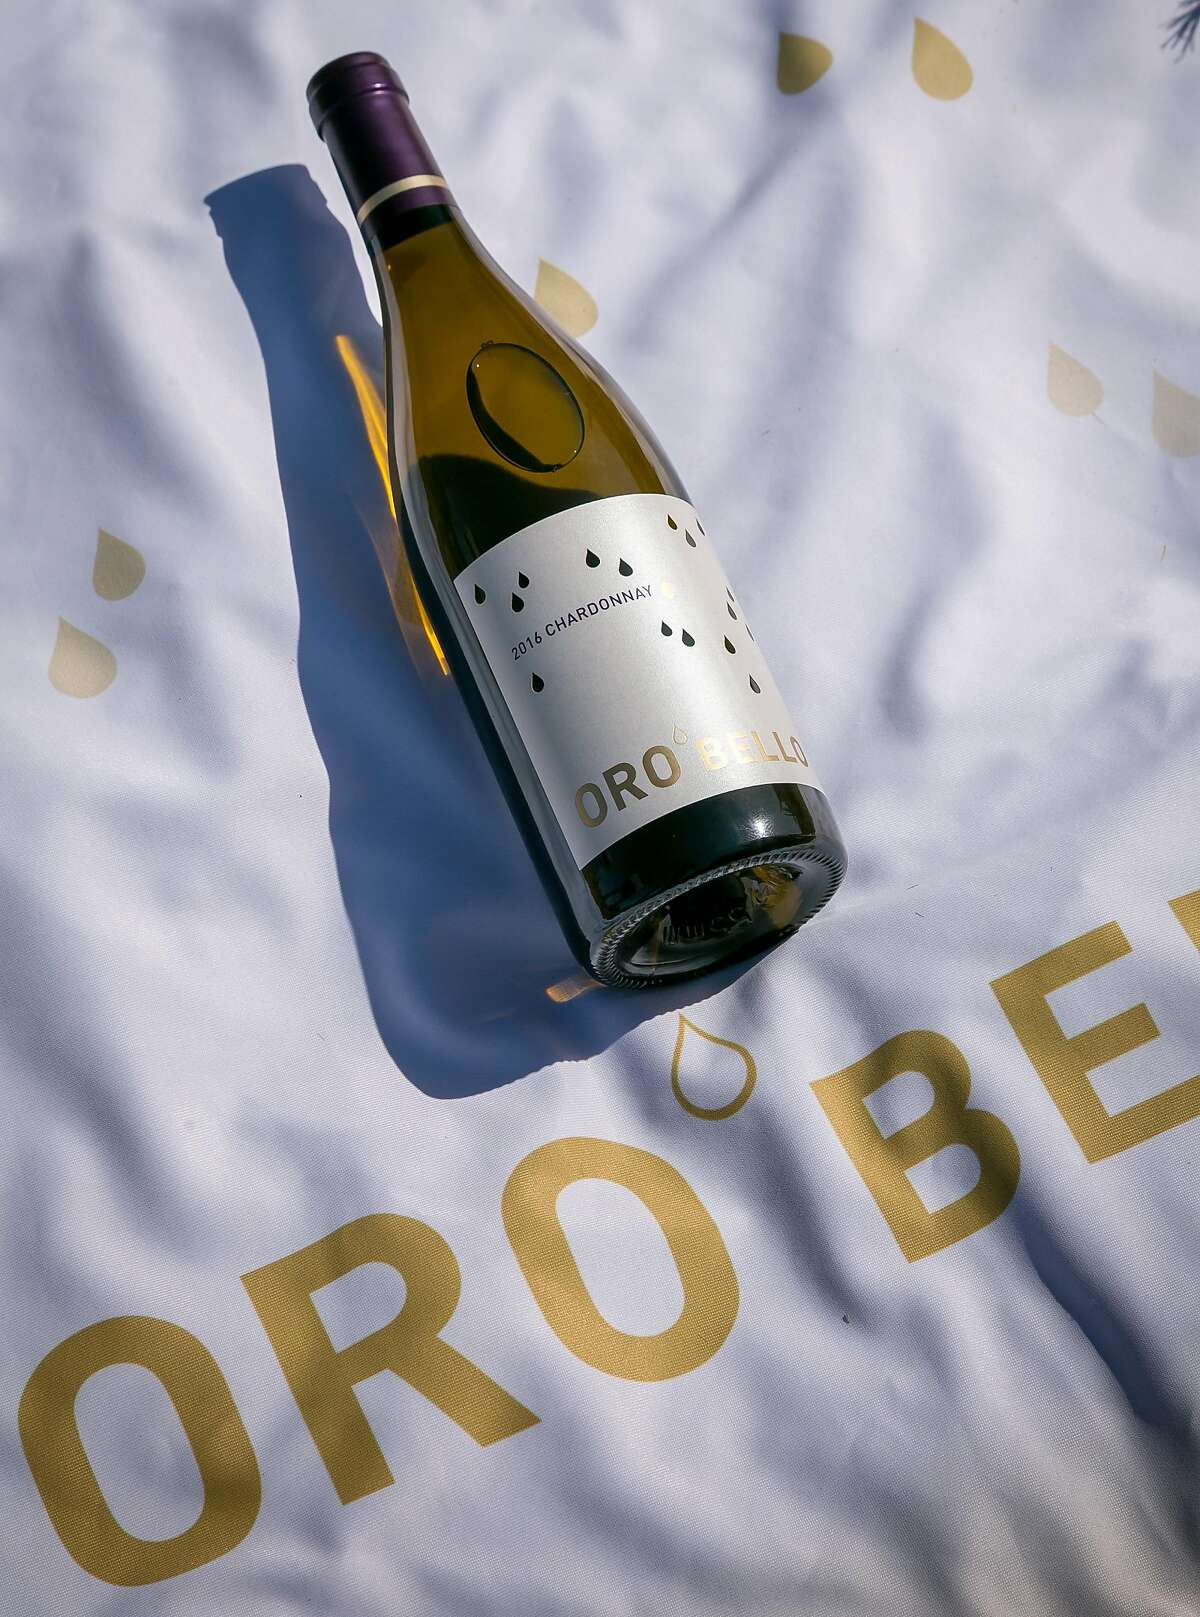 Marketing materials for Atlas Wine Co., whose lineup includes the $17.99 Oro Bello Chardonnay.